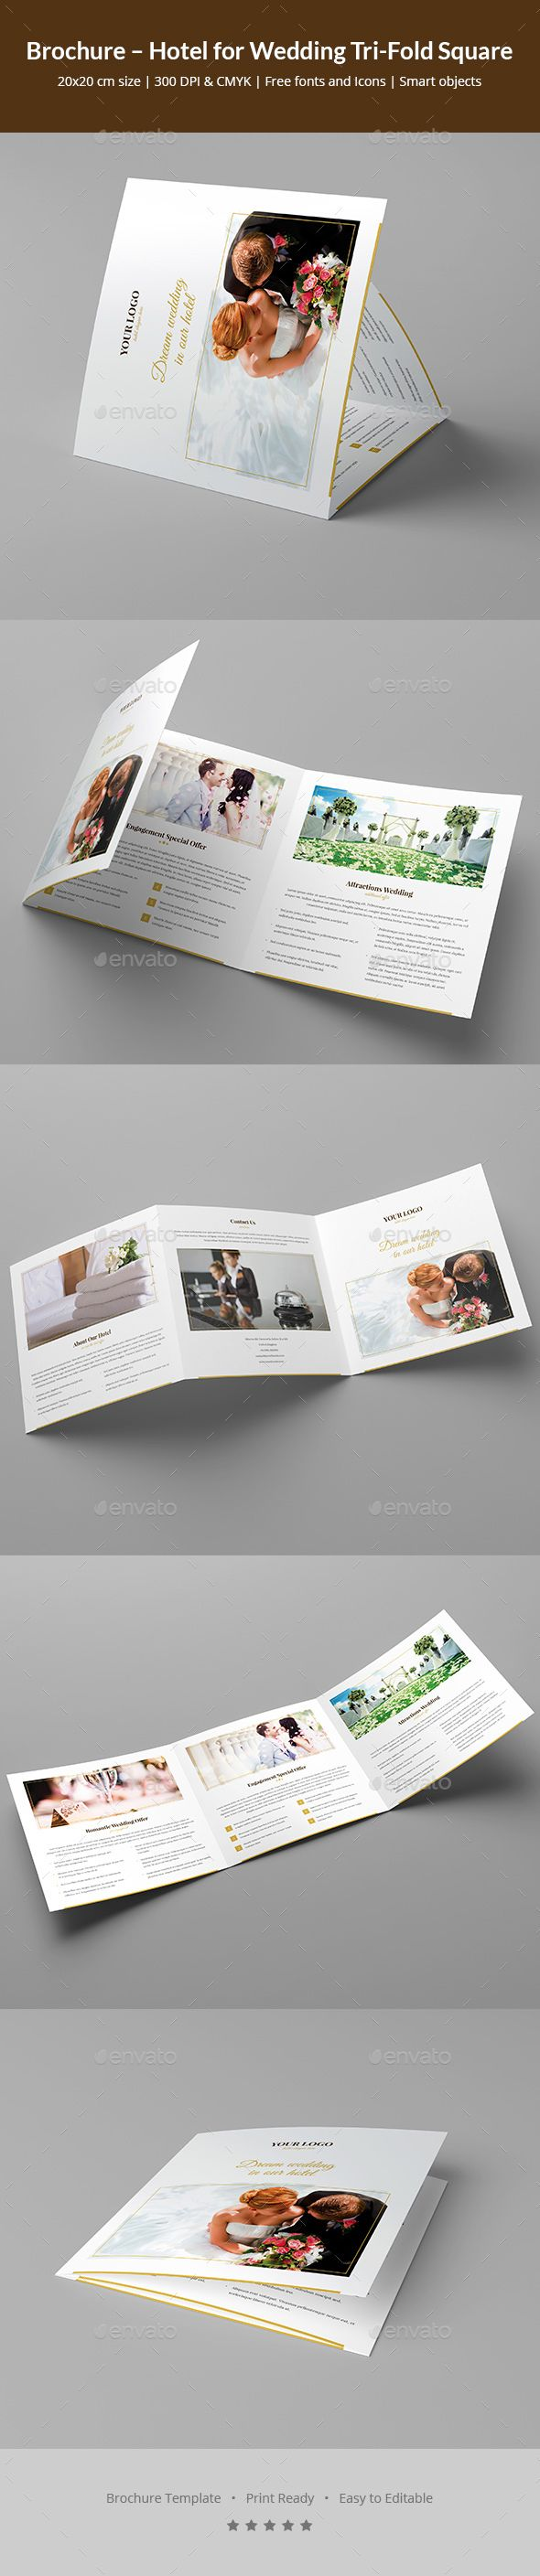 Hotel For Wedding Tri-Fold Square Brochure Template Psd